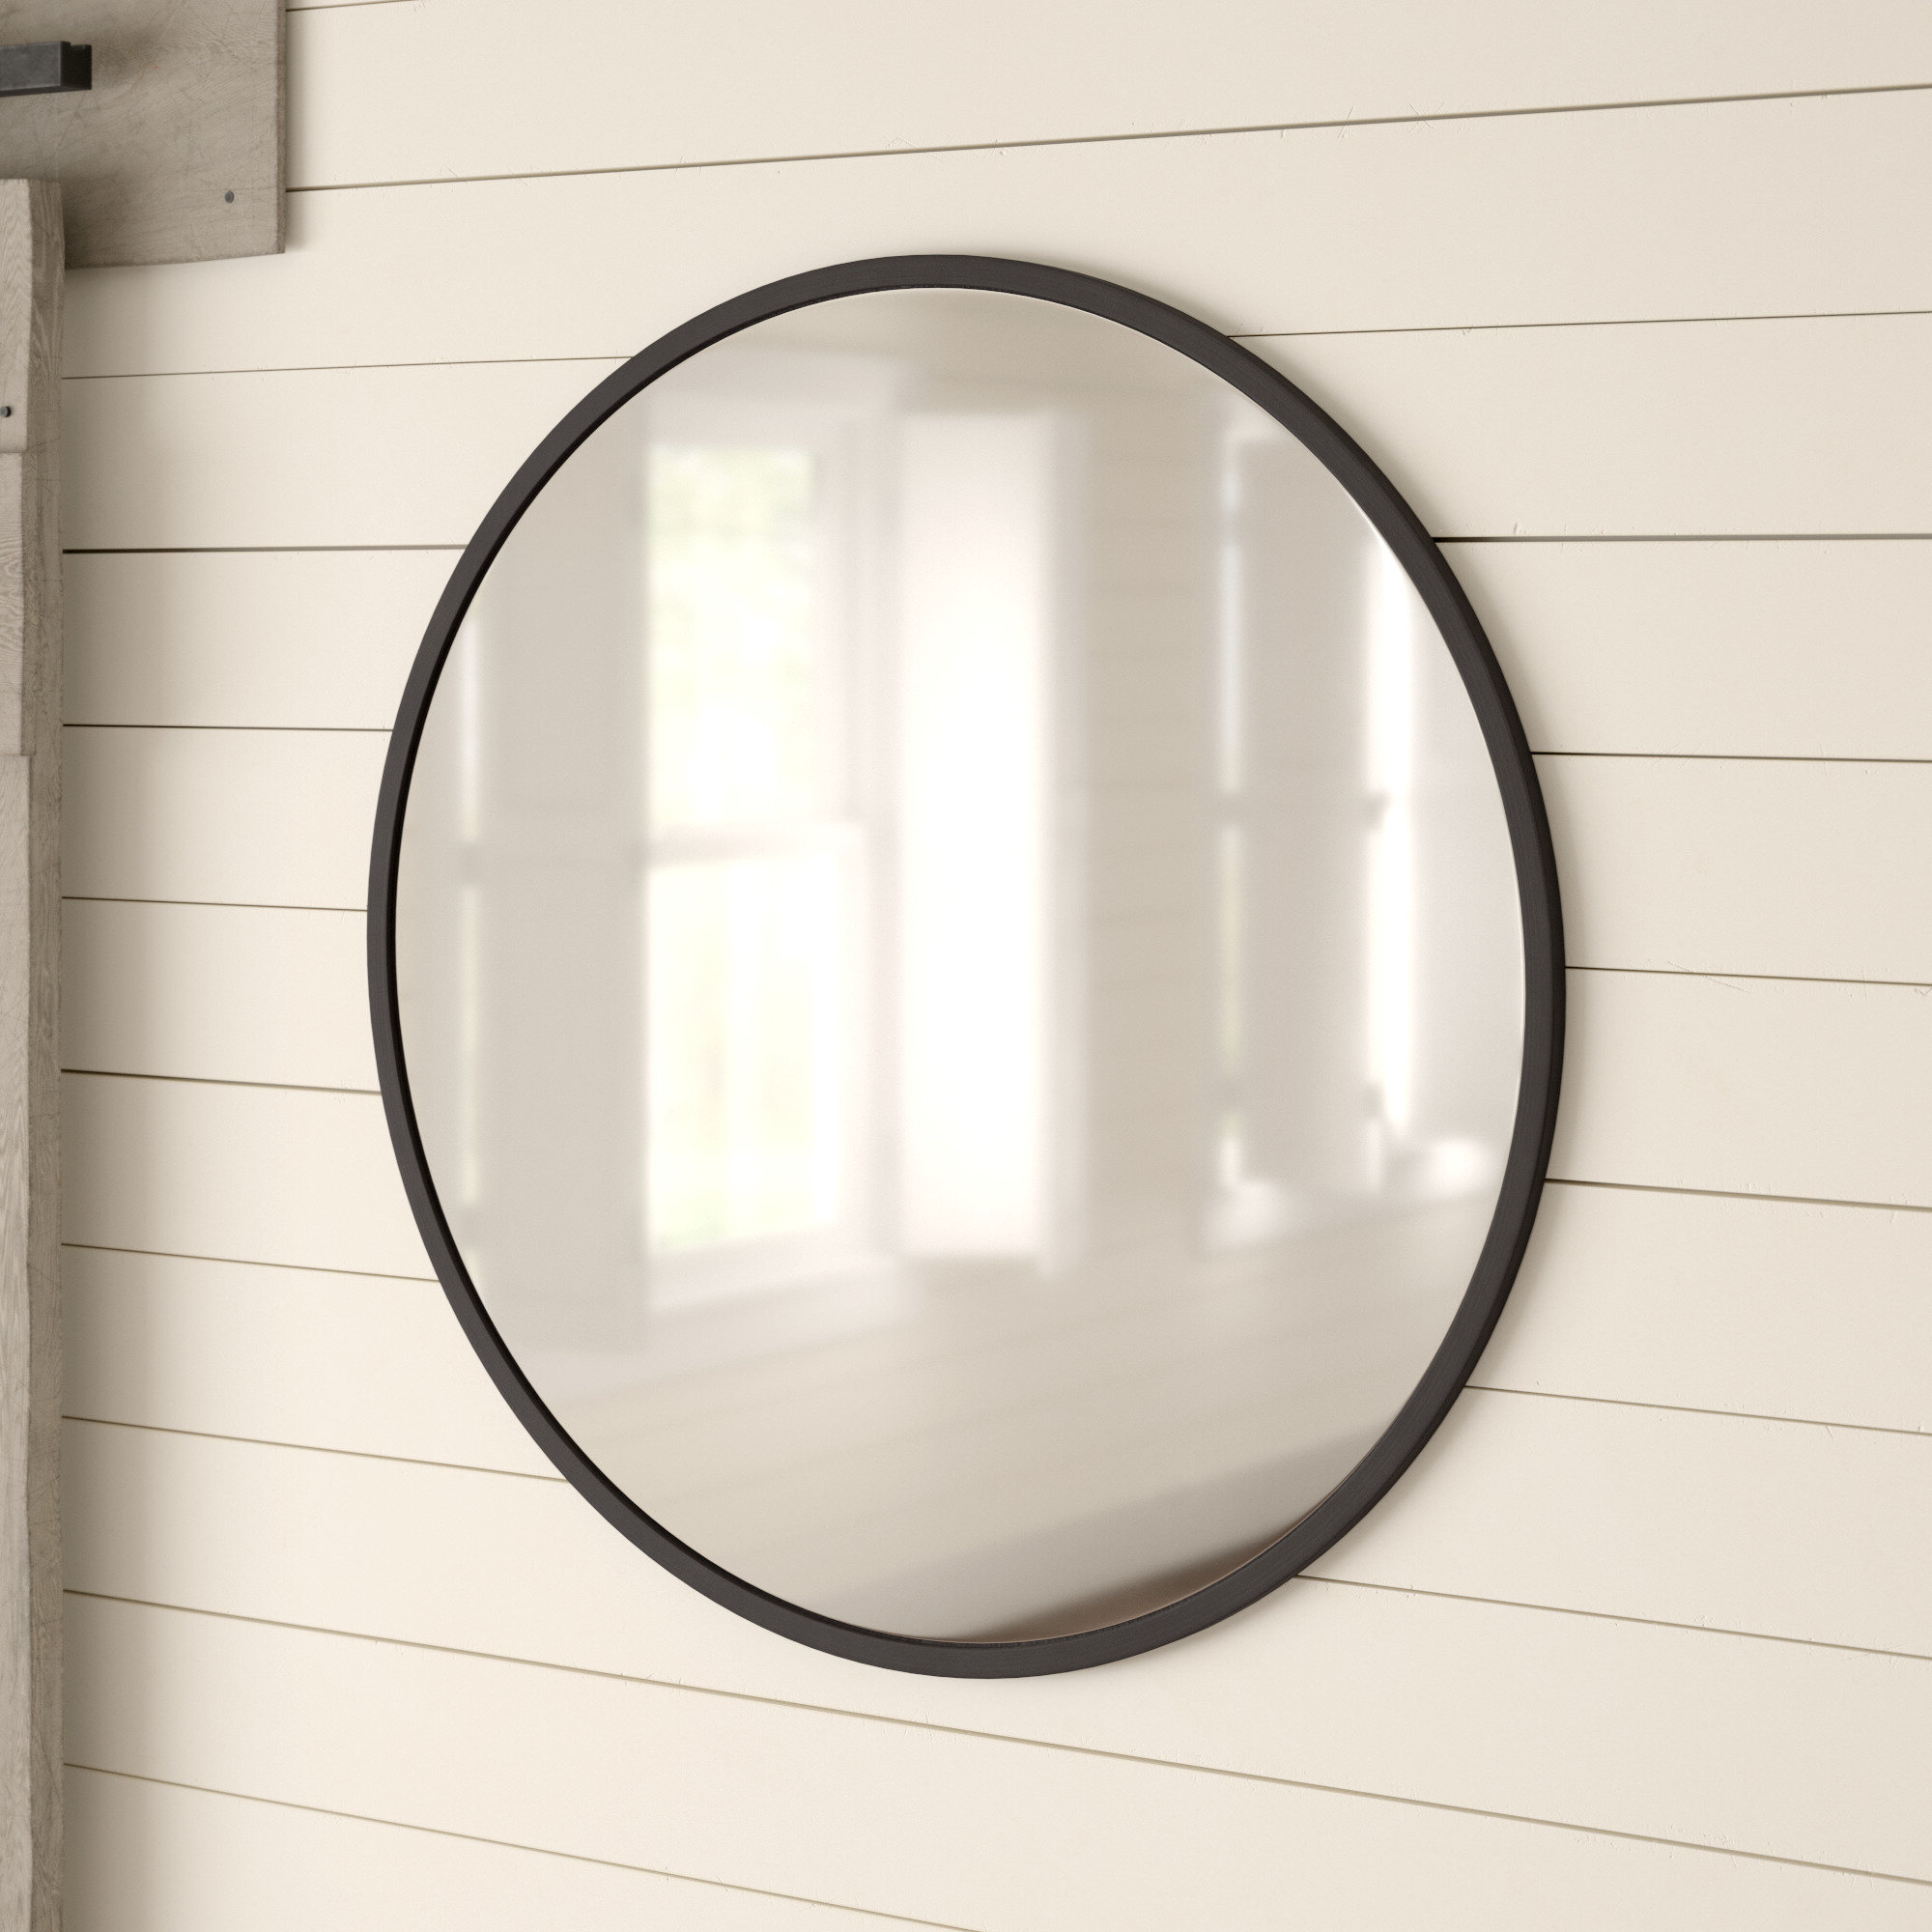 Minerva Accent Mirrors Pertaining To 2019 Hub Modern And Contemporary Accent Mirror (Gallery 8 of 20)